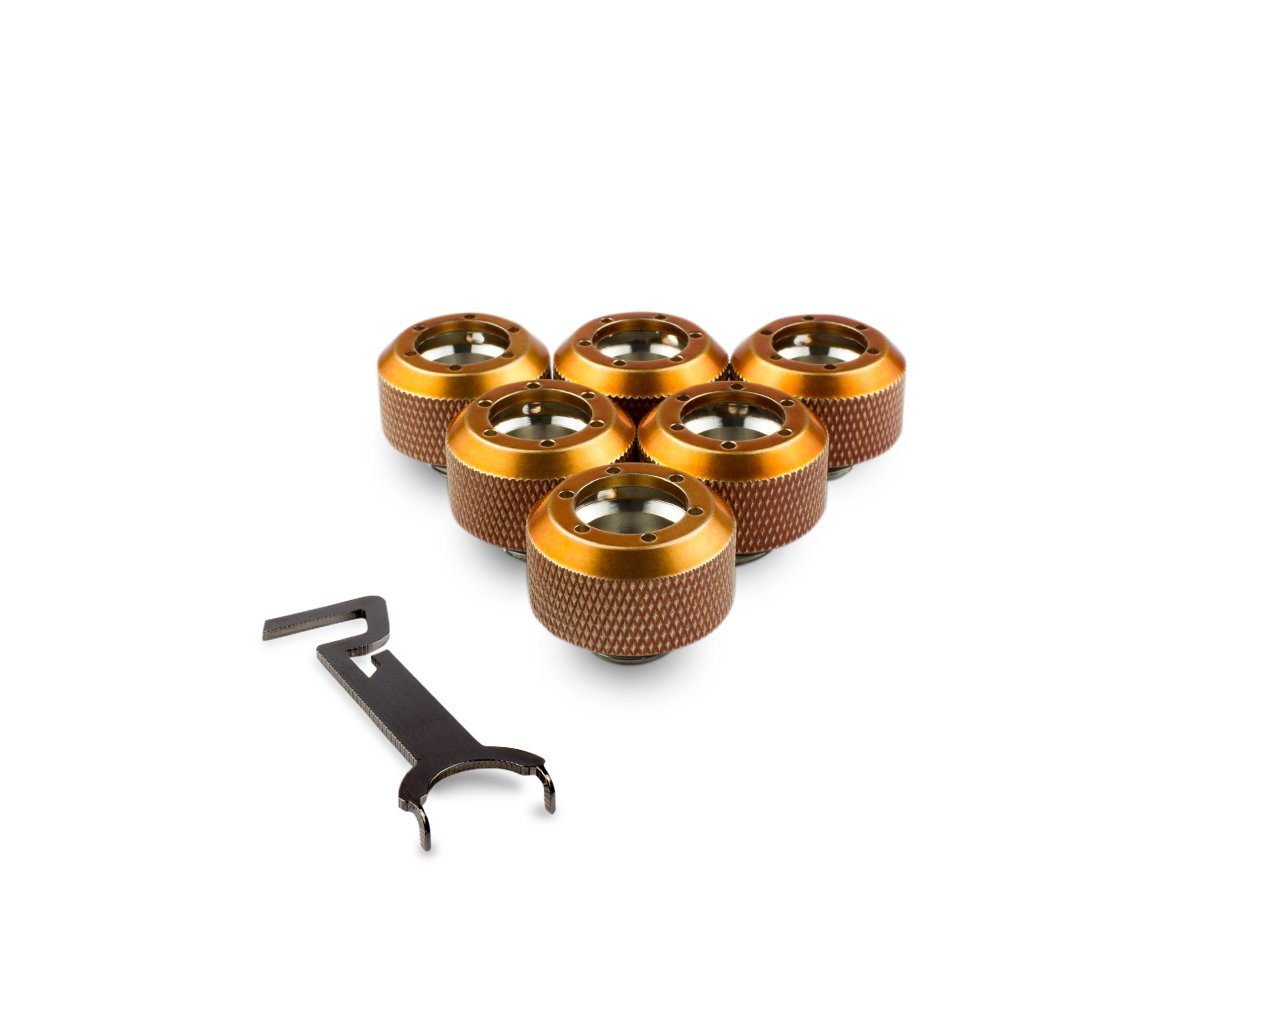 PrimoChill 1/2in. Rigid RevolverSX Series Fitting - Candy Copper - 6 Pack